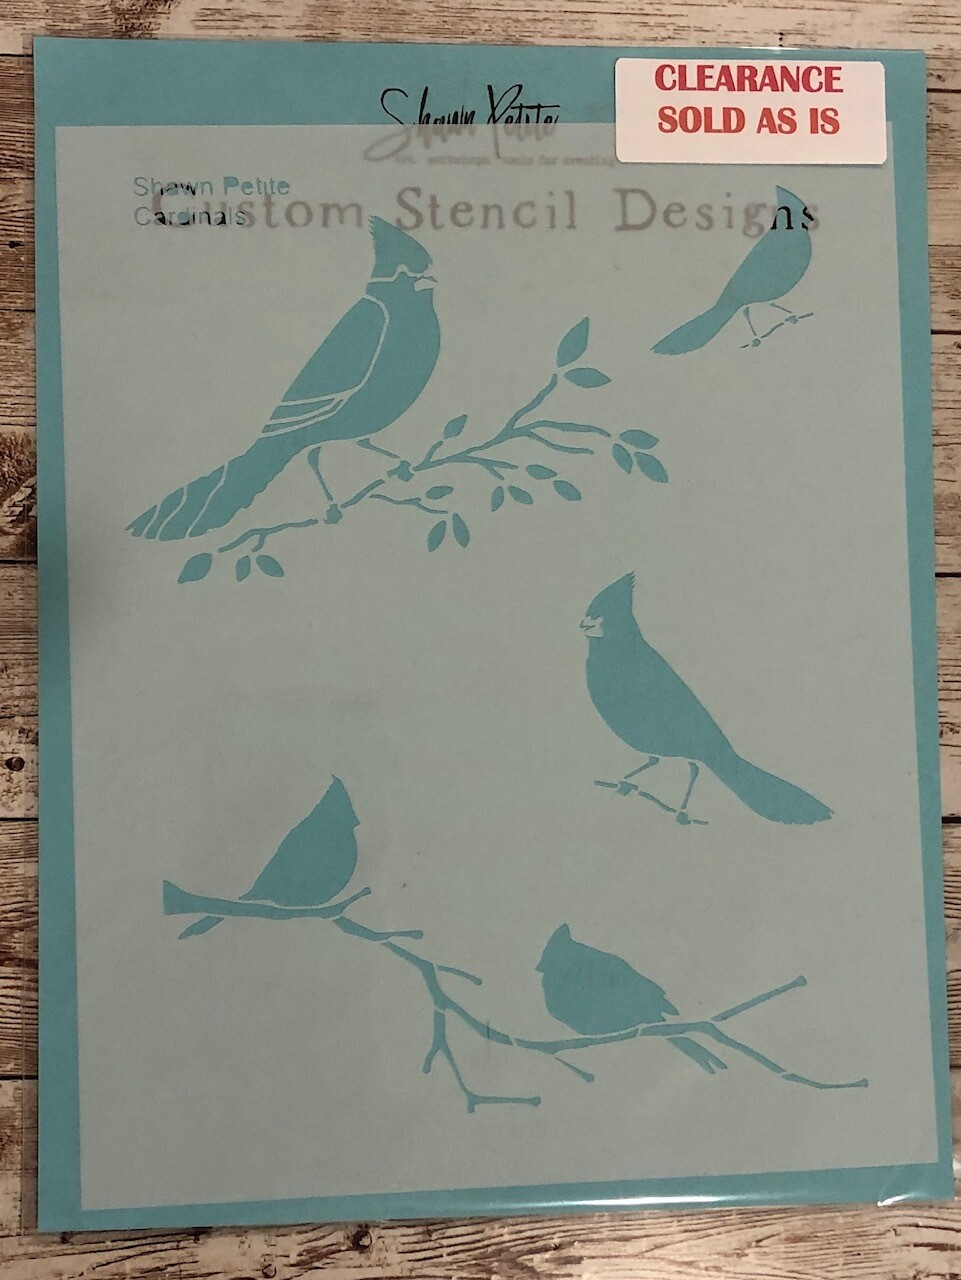 Cardinals stencil clearance